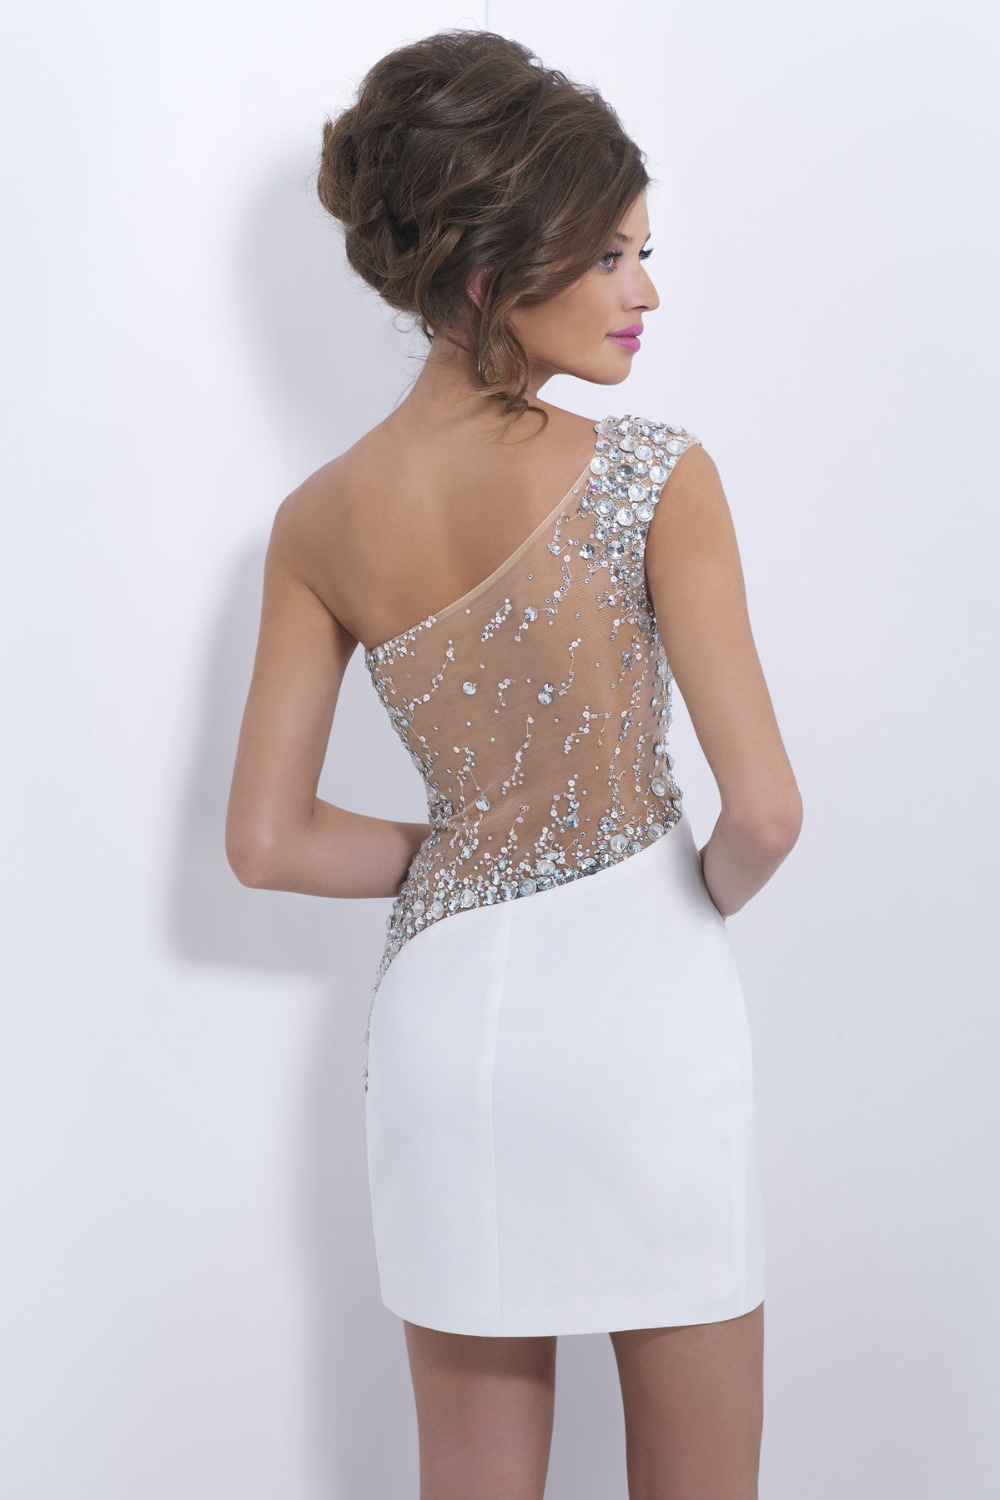 Short Tight White Prom Dresses Short prom gowns 2014 new